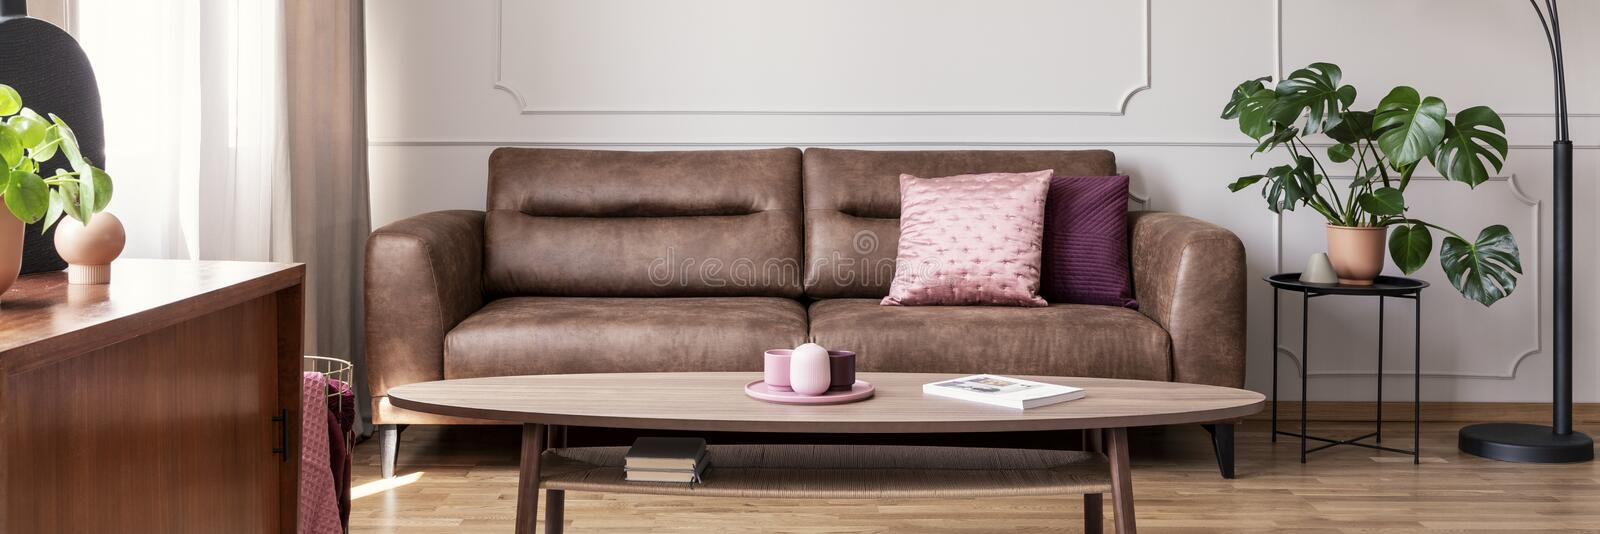 Panorama of pink pillow on leather sofa in living room interior with plant and wooden table. Real photo. Concept stock image